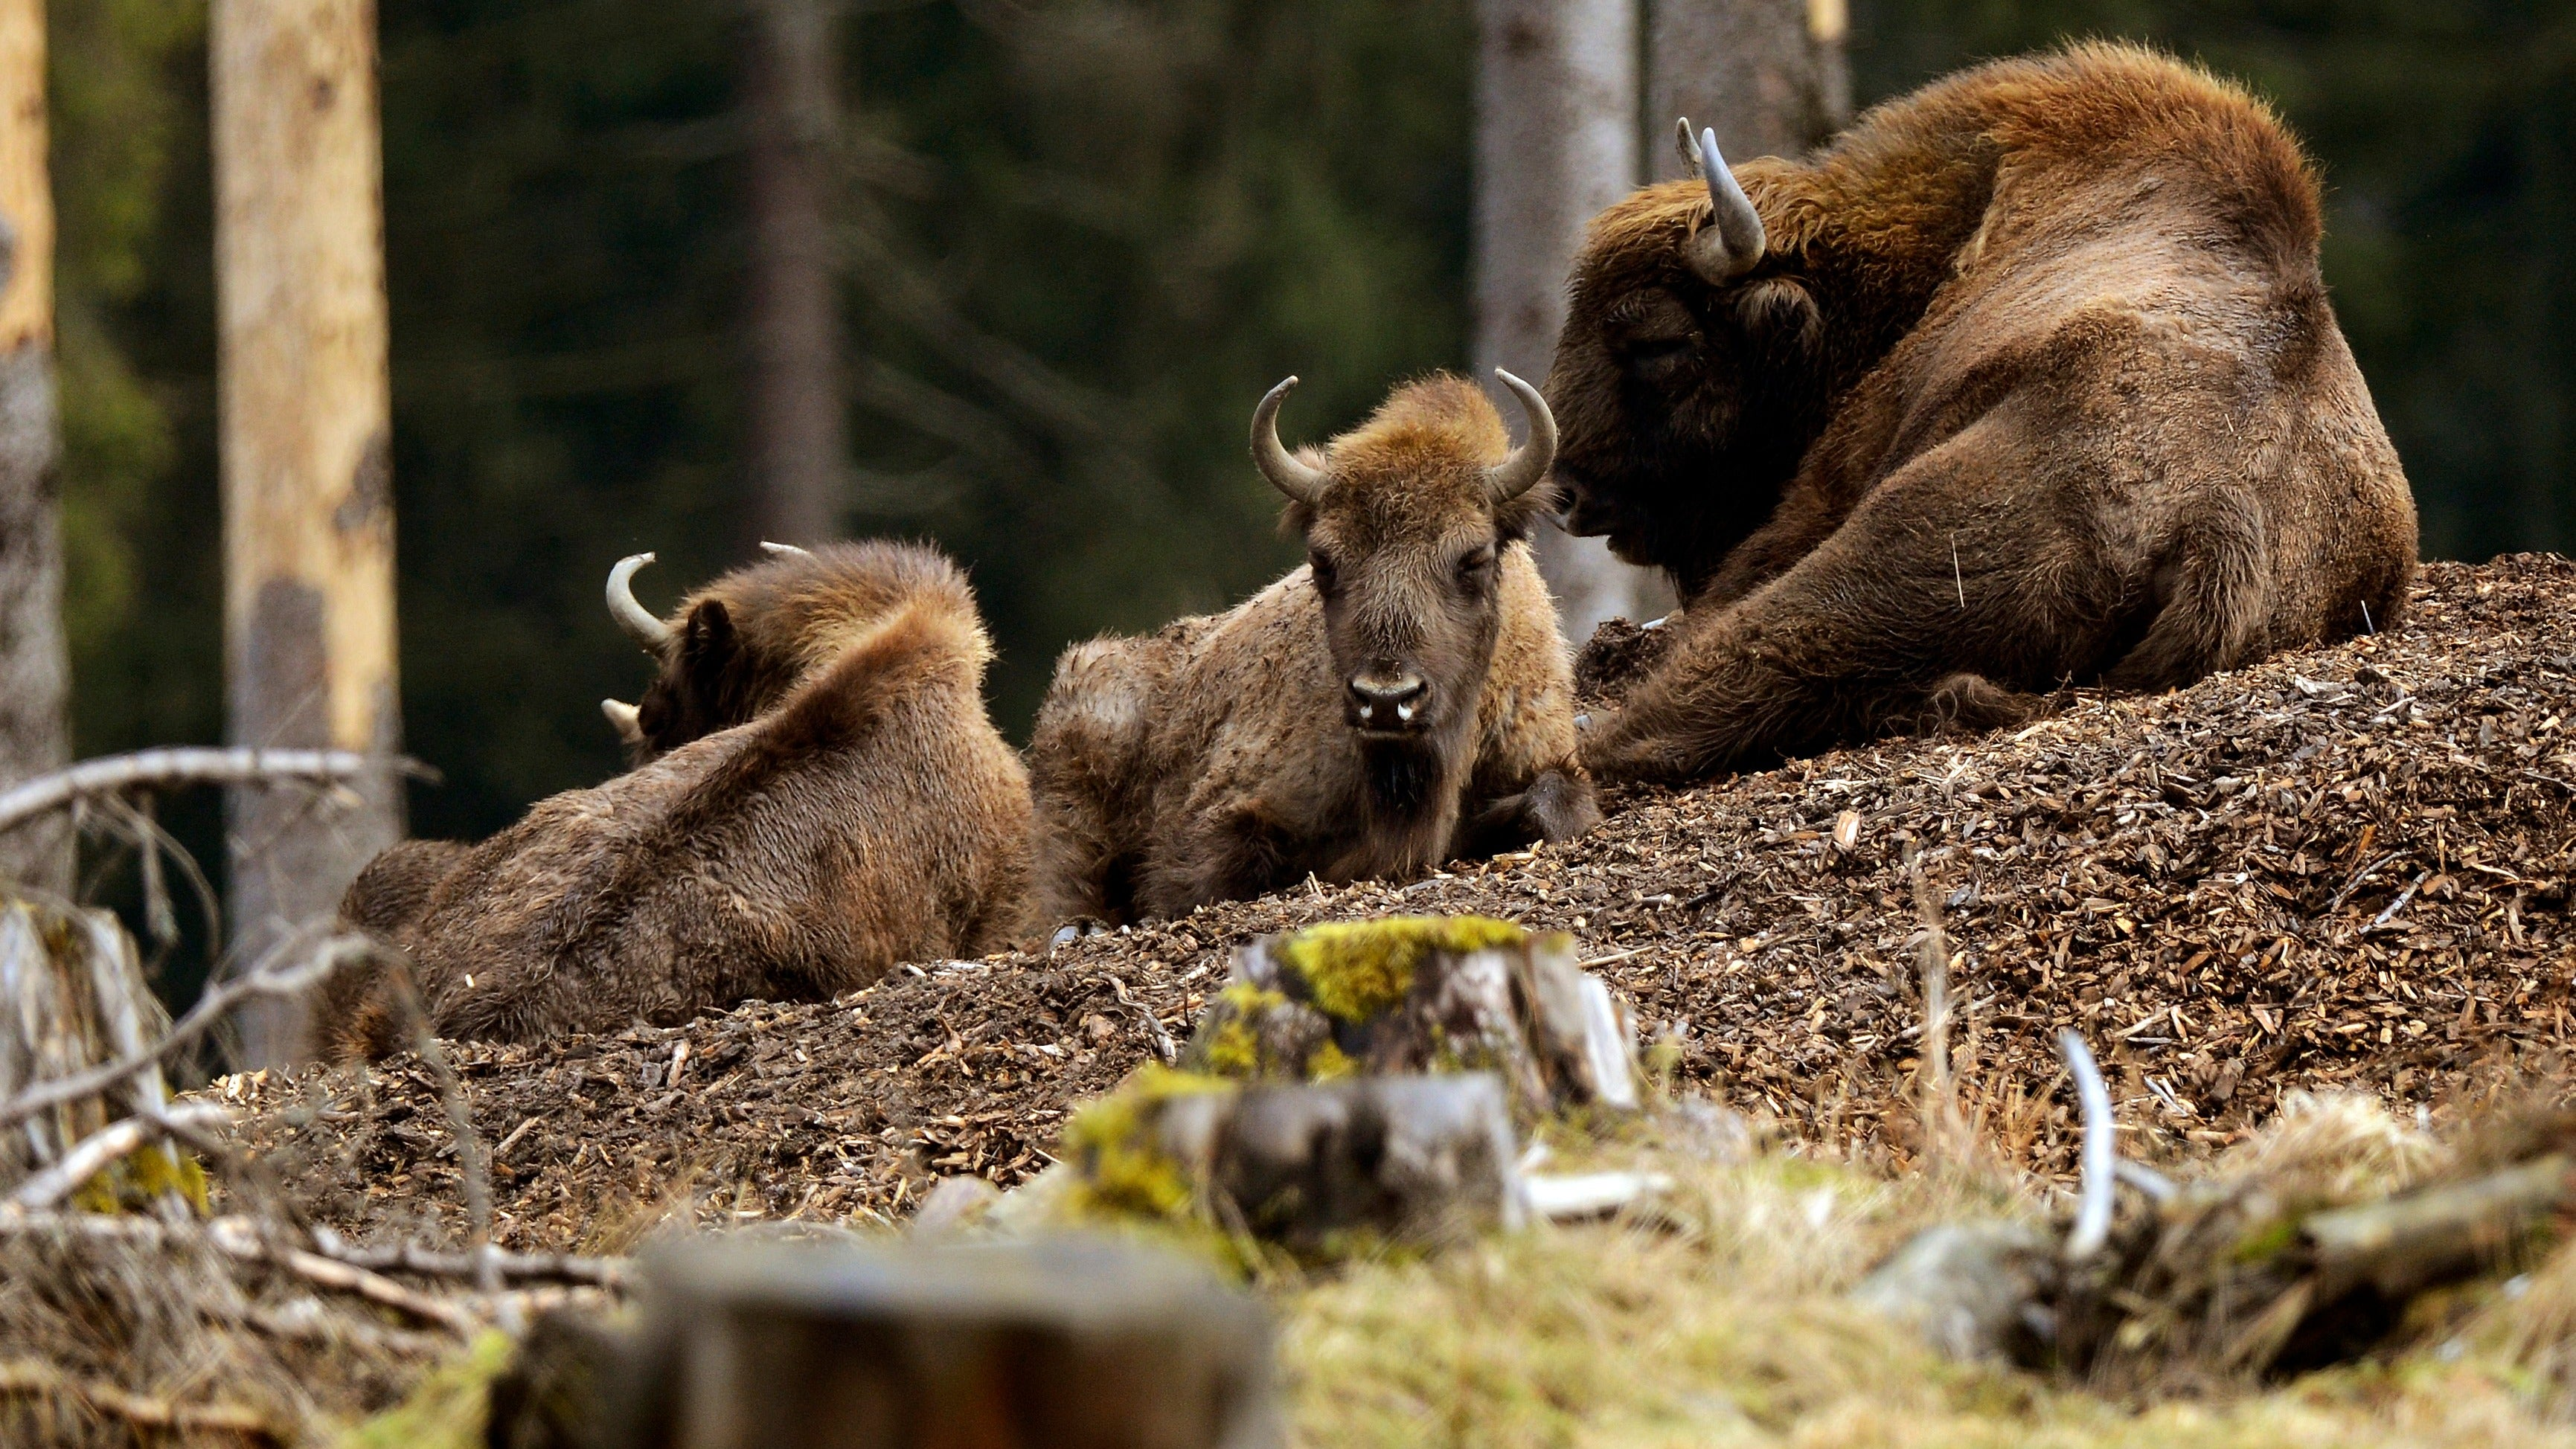 Jerk Humans Immediately Shoot First Wild Bison Seen In Germany For Over 250 Years